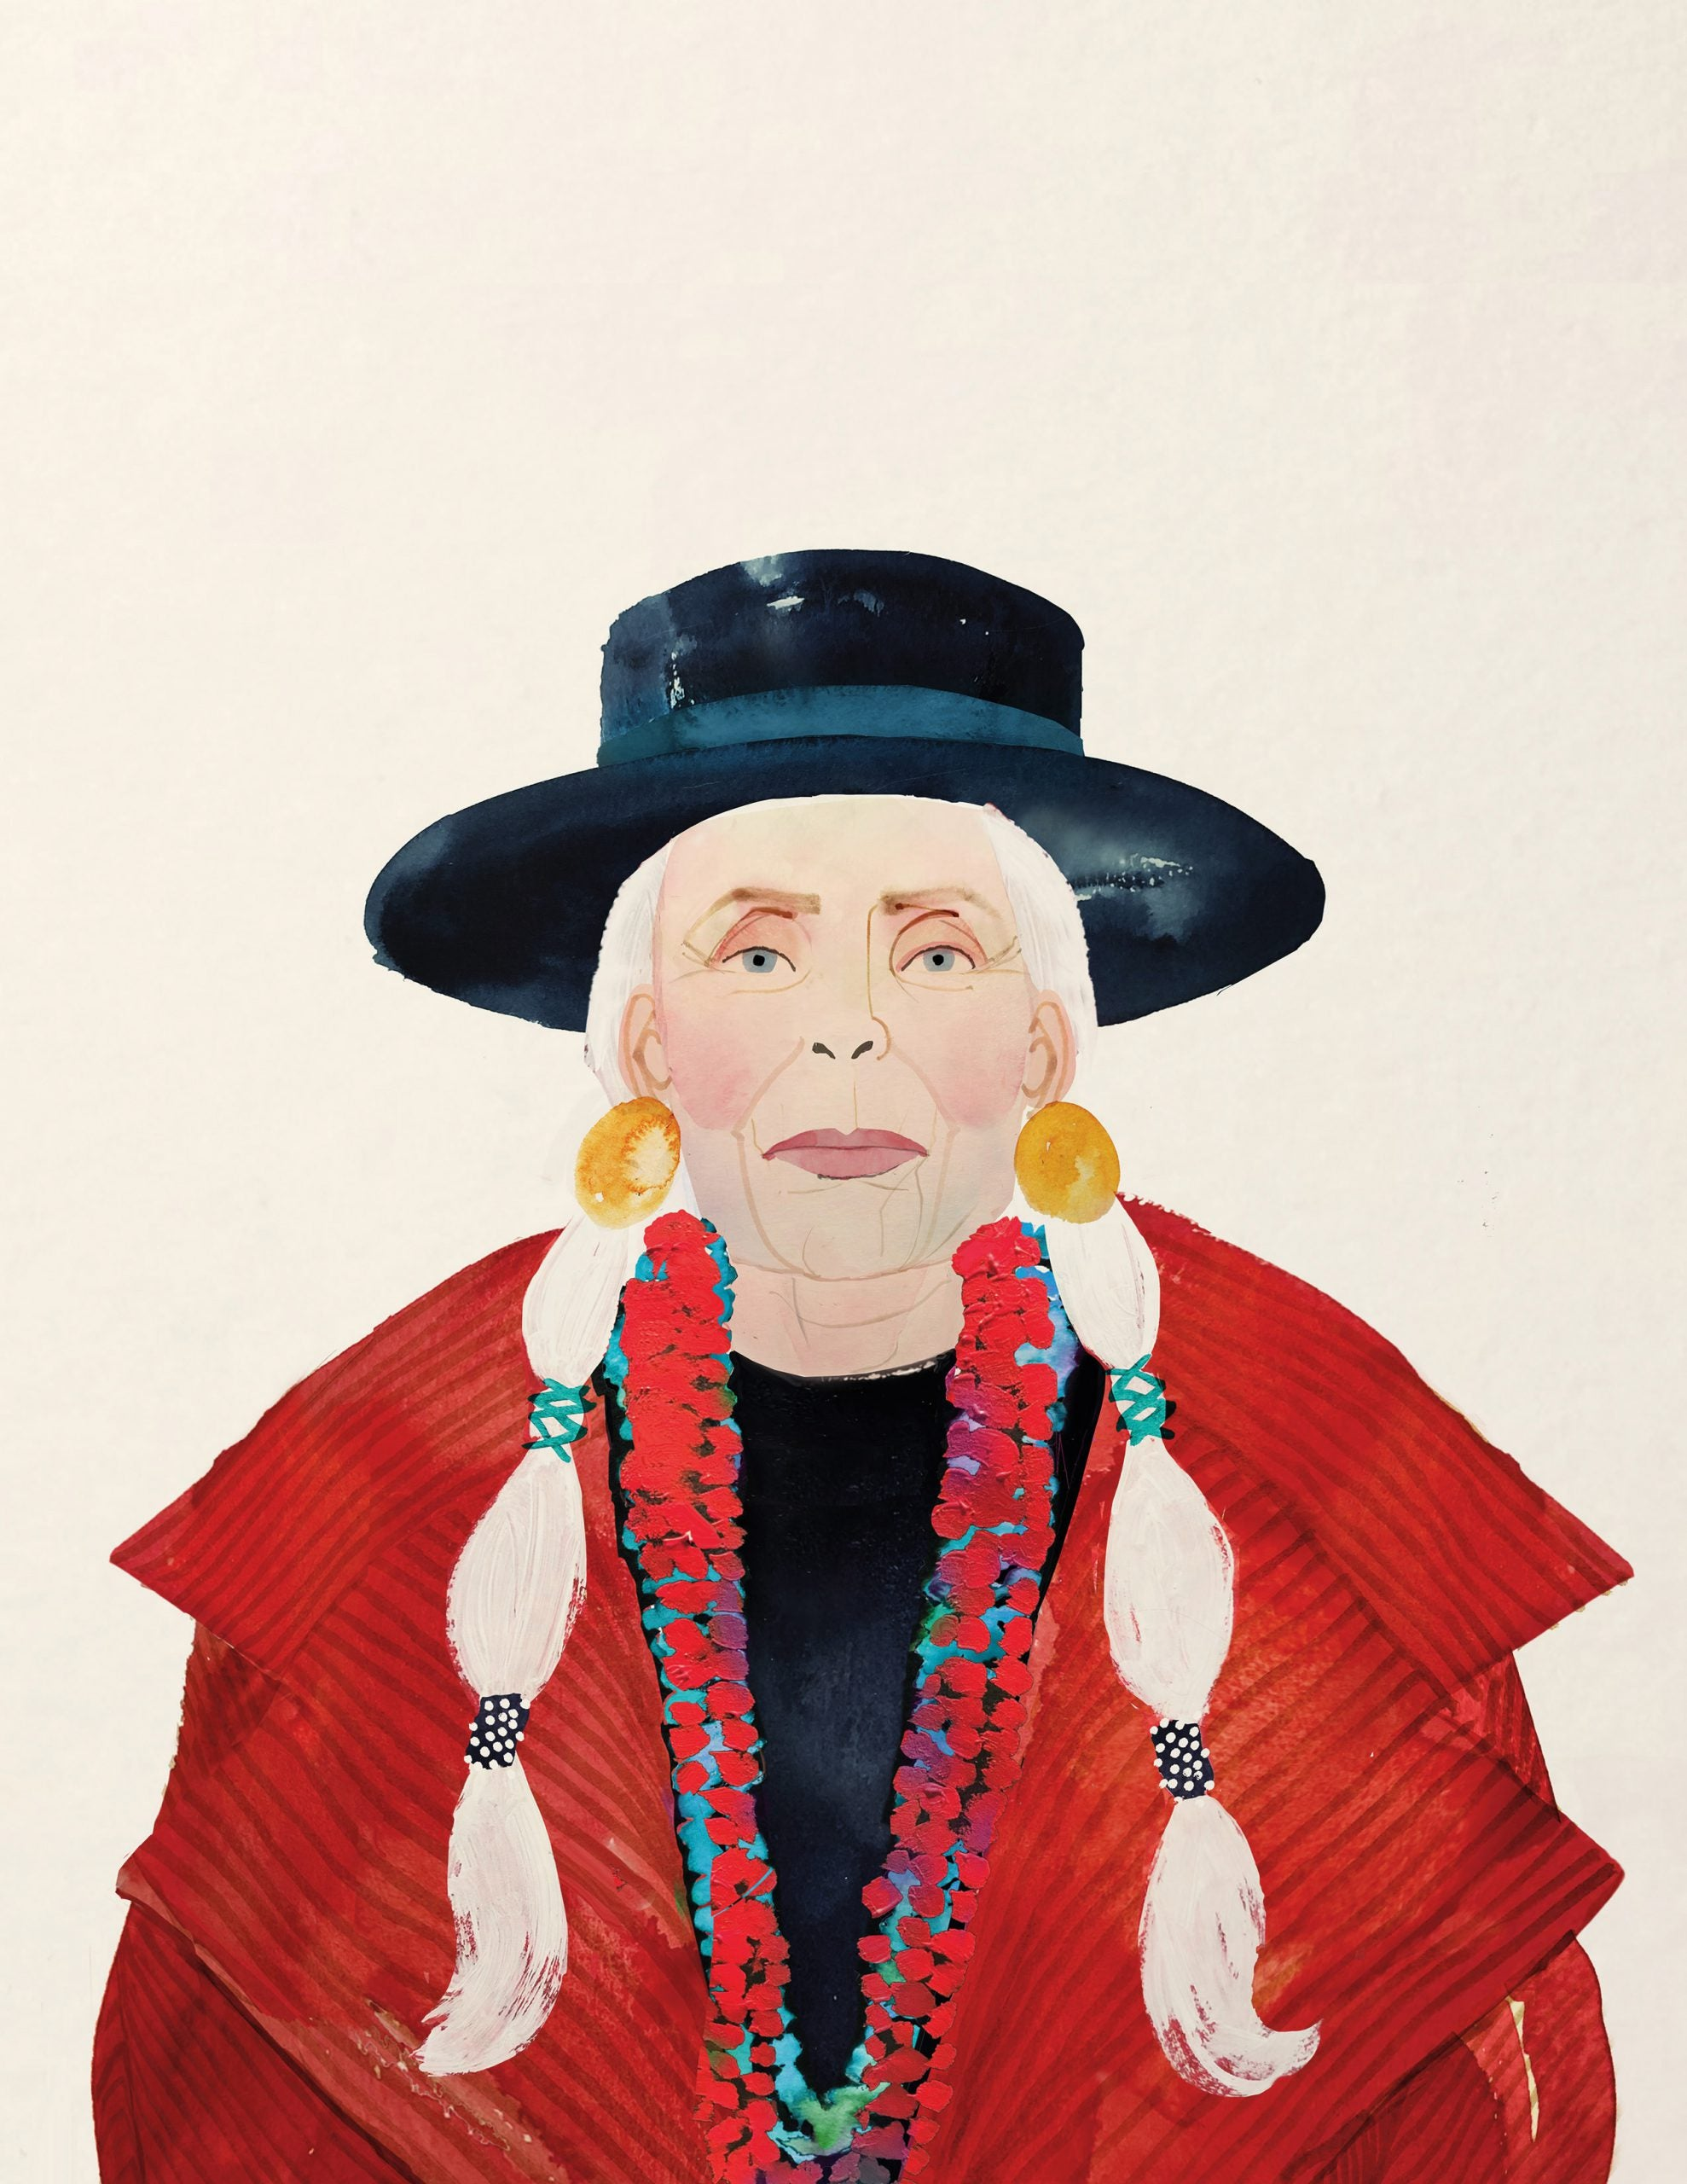 """Joni Mitchell: """"I know what I want and I'm not afraid to stand up for it"""""""